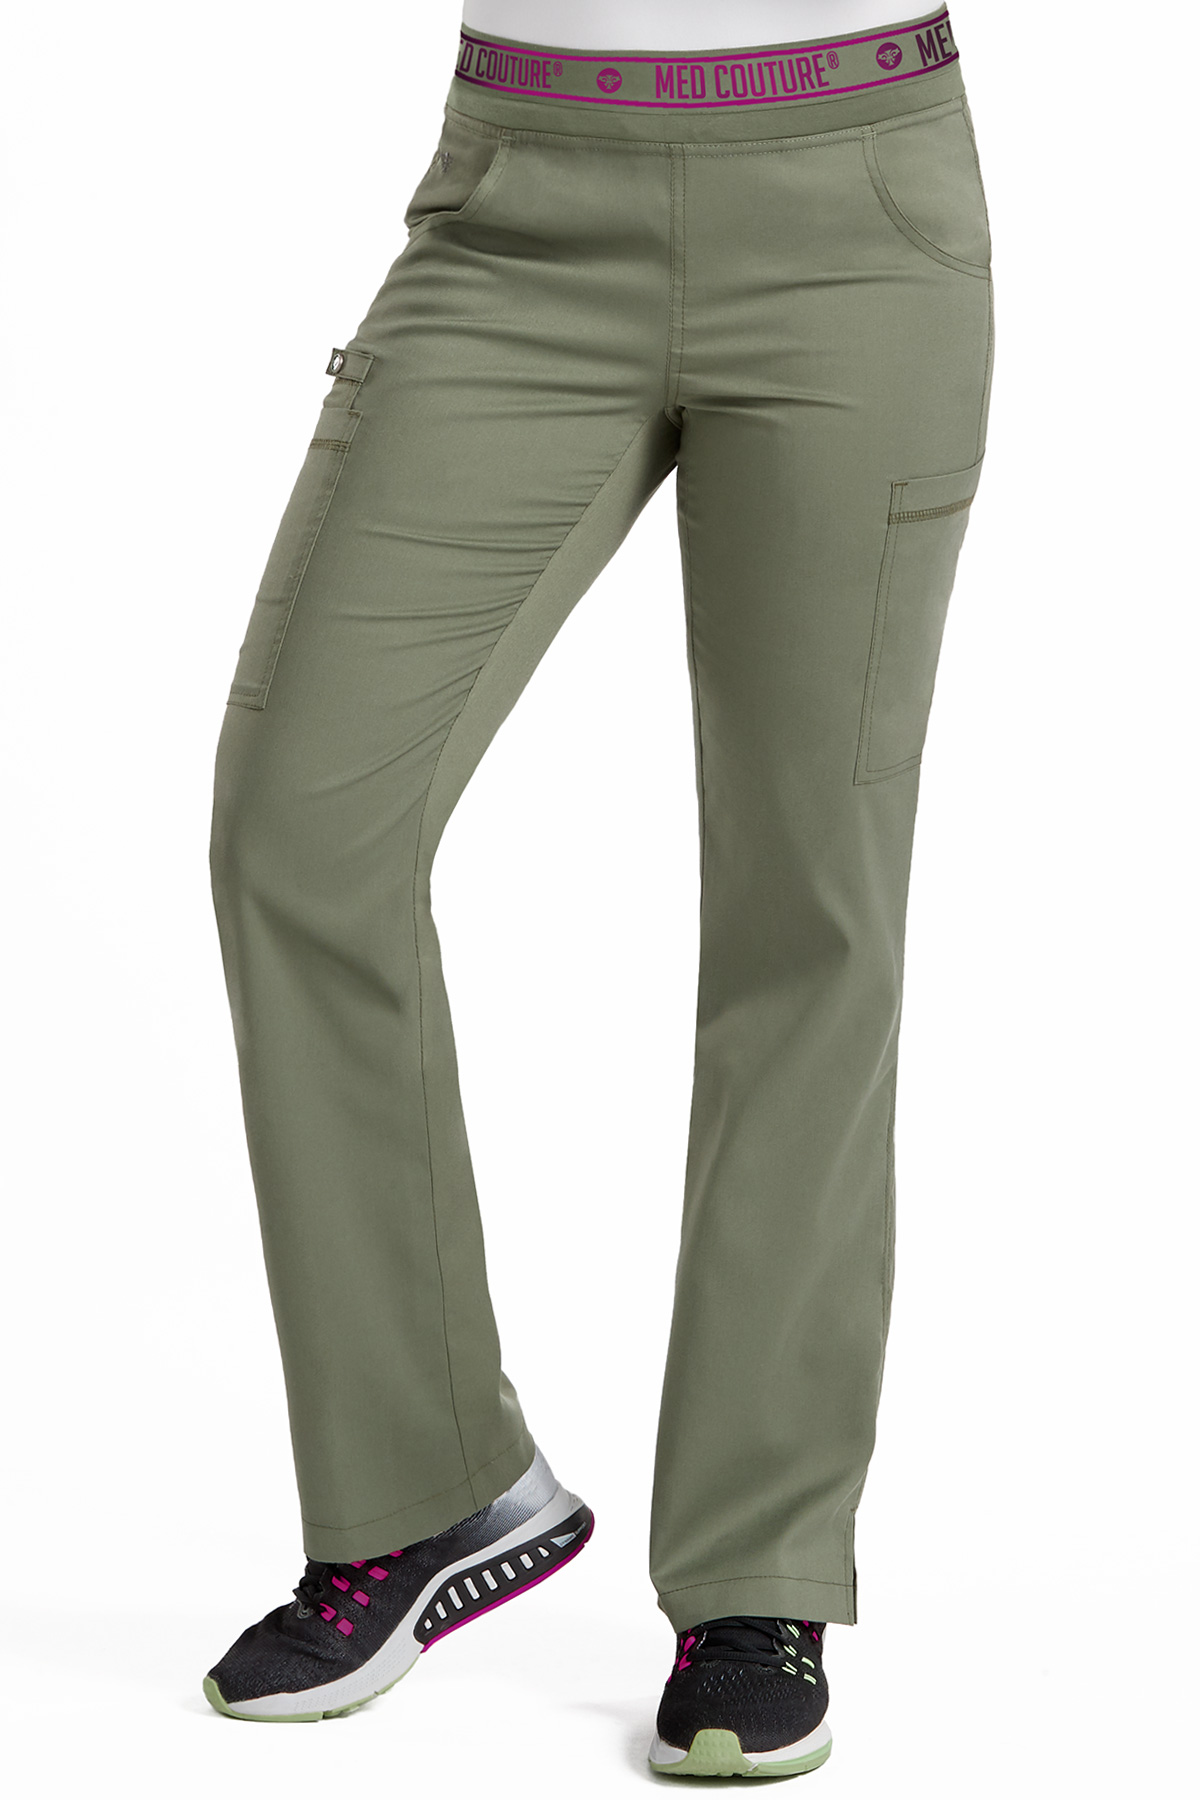 Med Couture Touch Yoga 2 Cargo Pocket Pant-Med Couture Touch